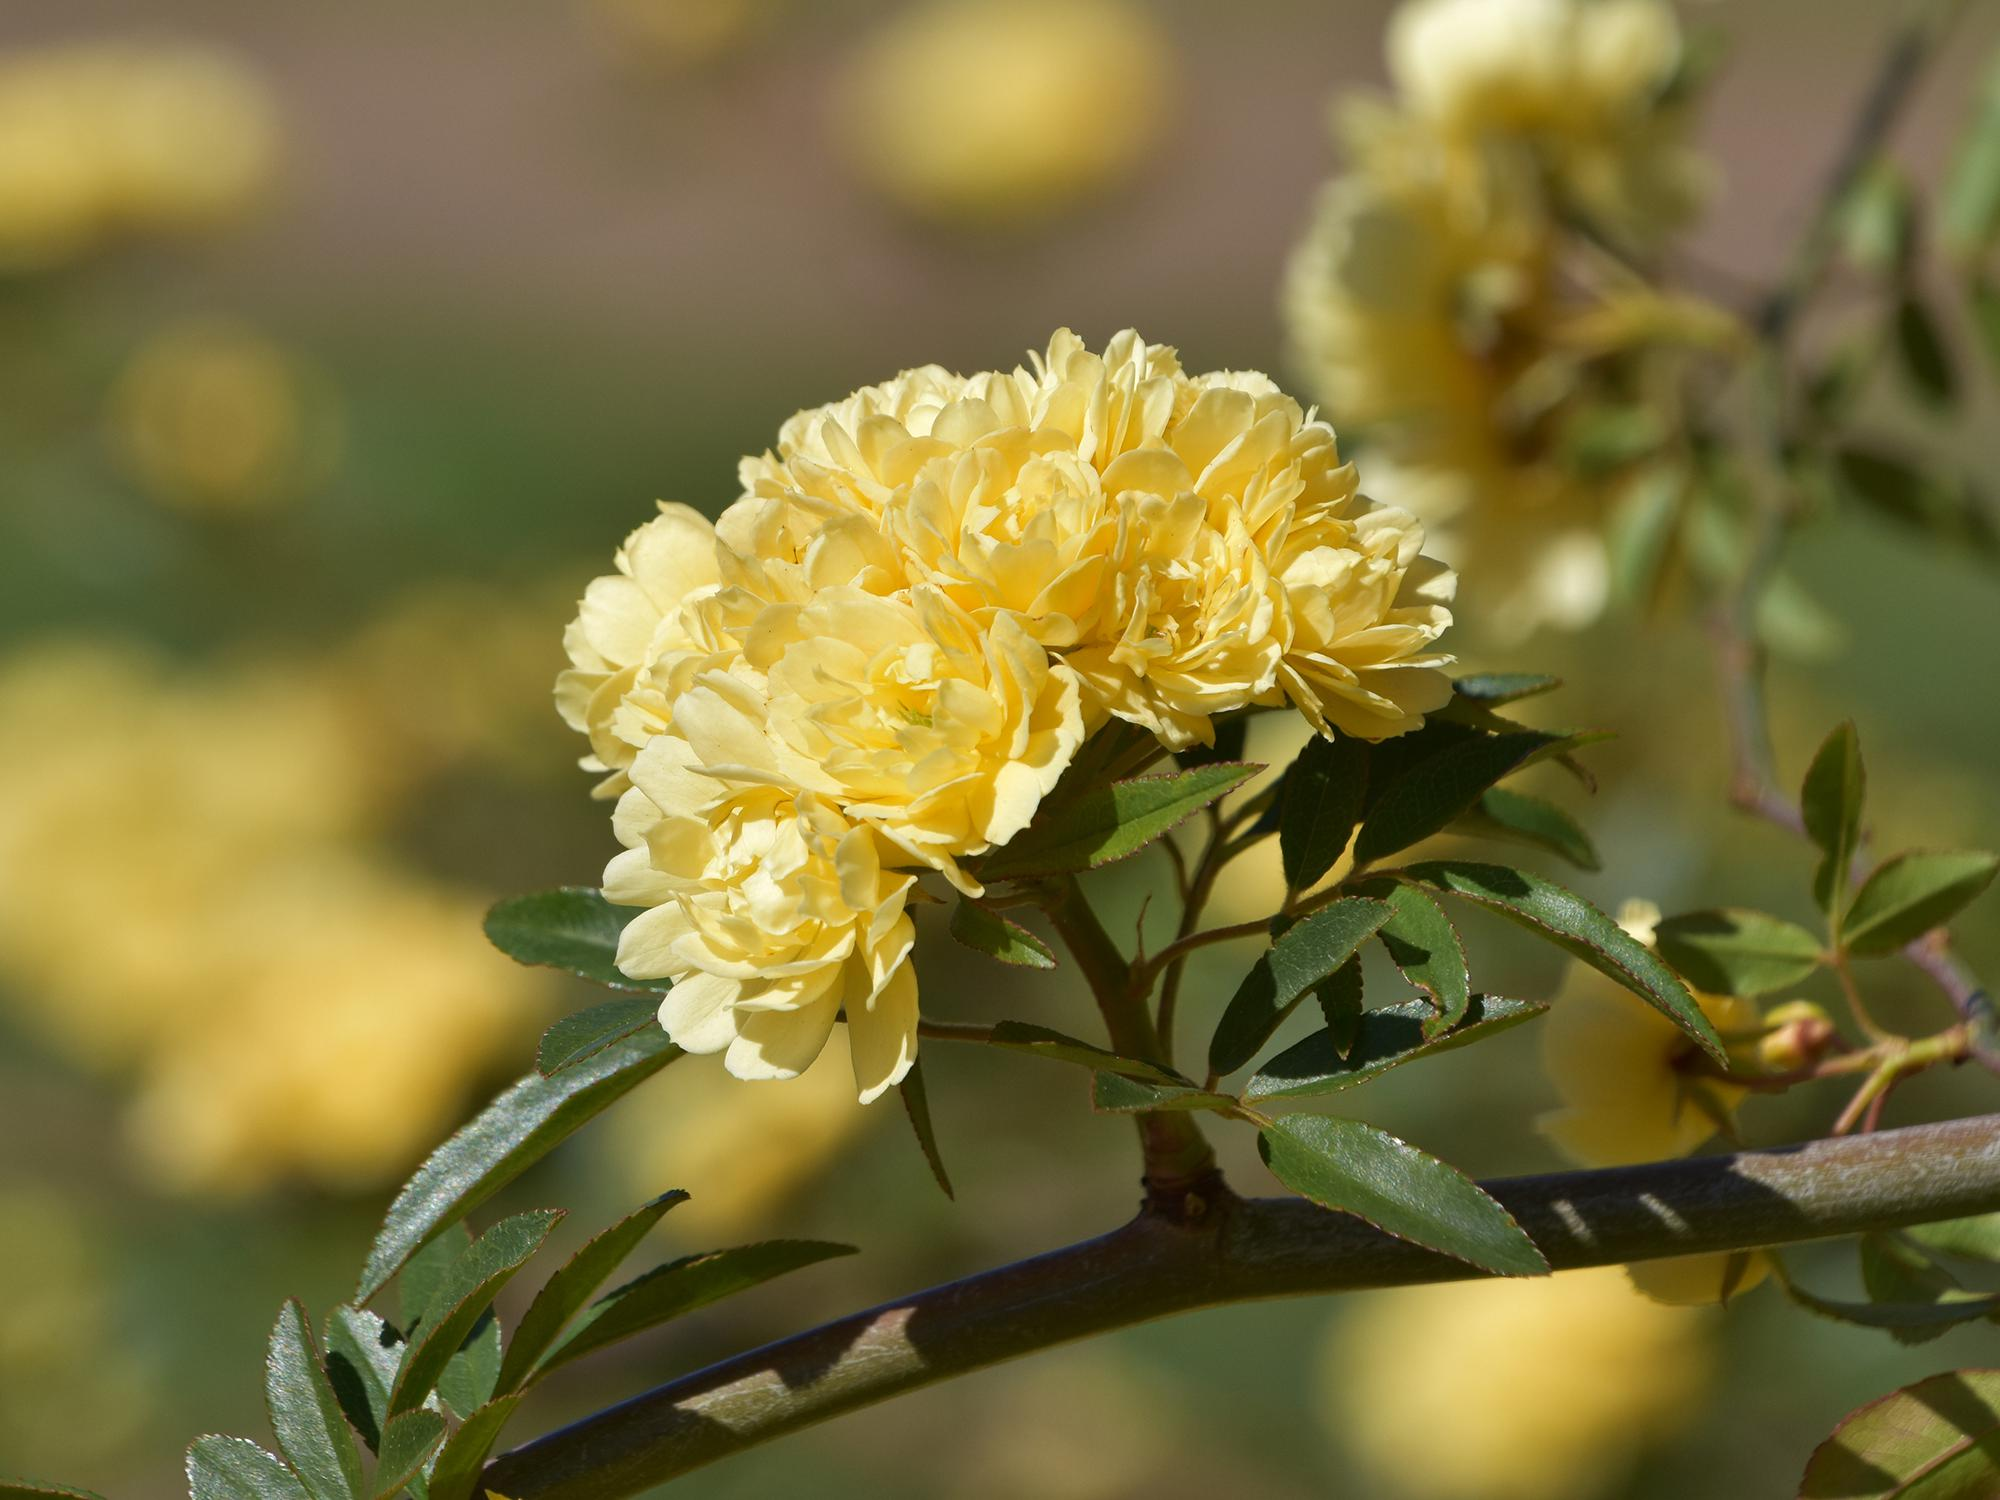 Although common in Southern landscapes, the Lady Banks rose dates back to the late 1790s and came from China. (Photo by MSU Extension/Gary Bachman)